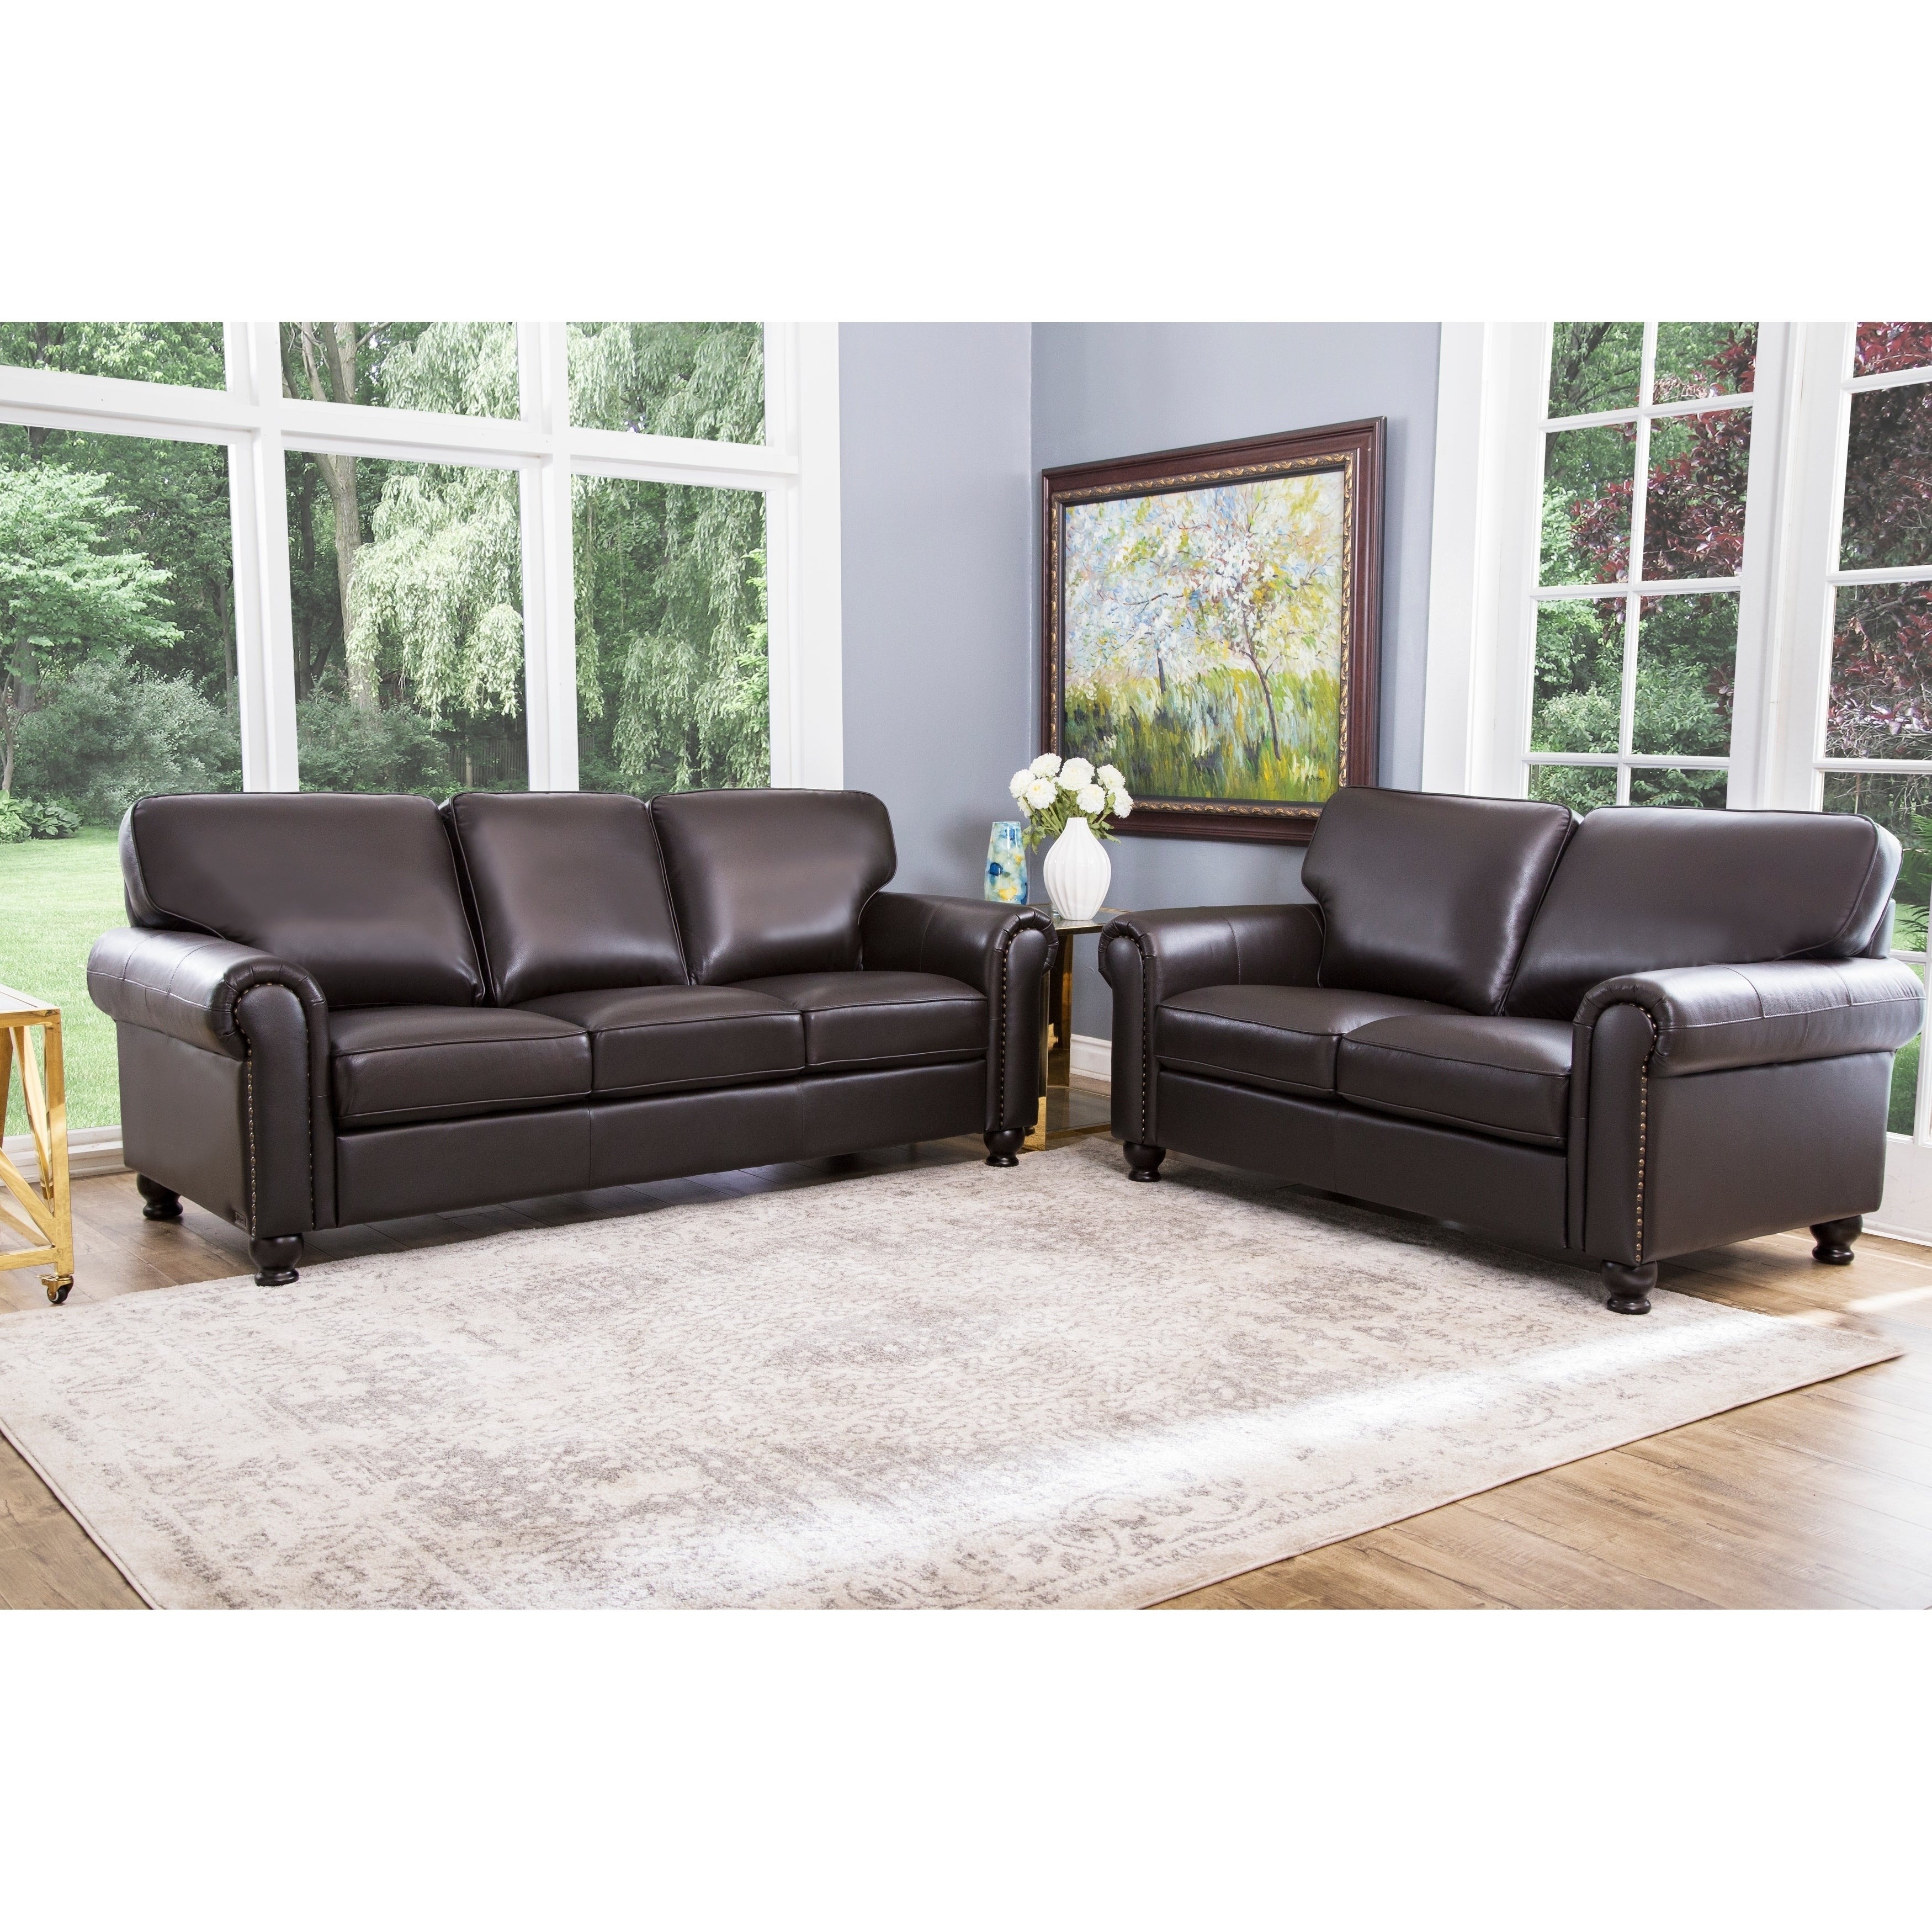 Abson London Brown Top Grain Leather 2 Piece Living Room Set with 10 Some of the Coolest Ideas How to Makeover The Living Room Set